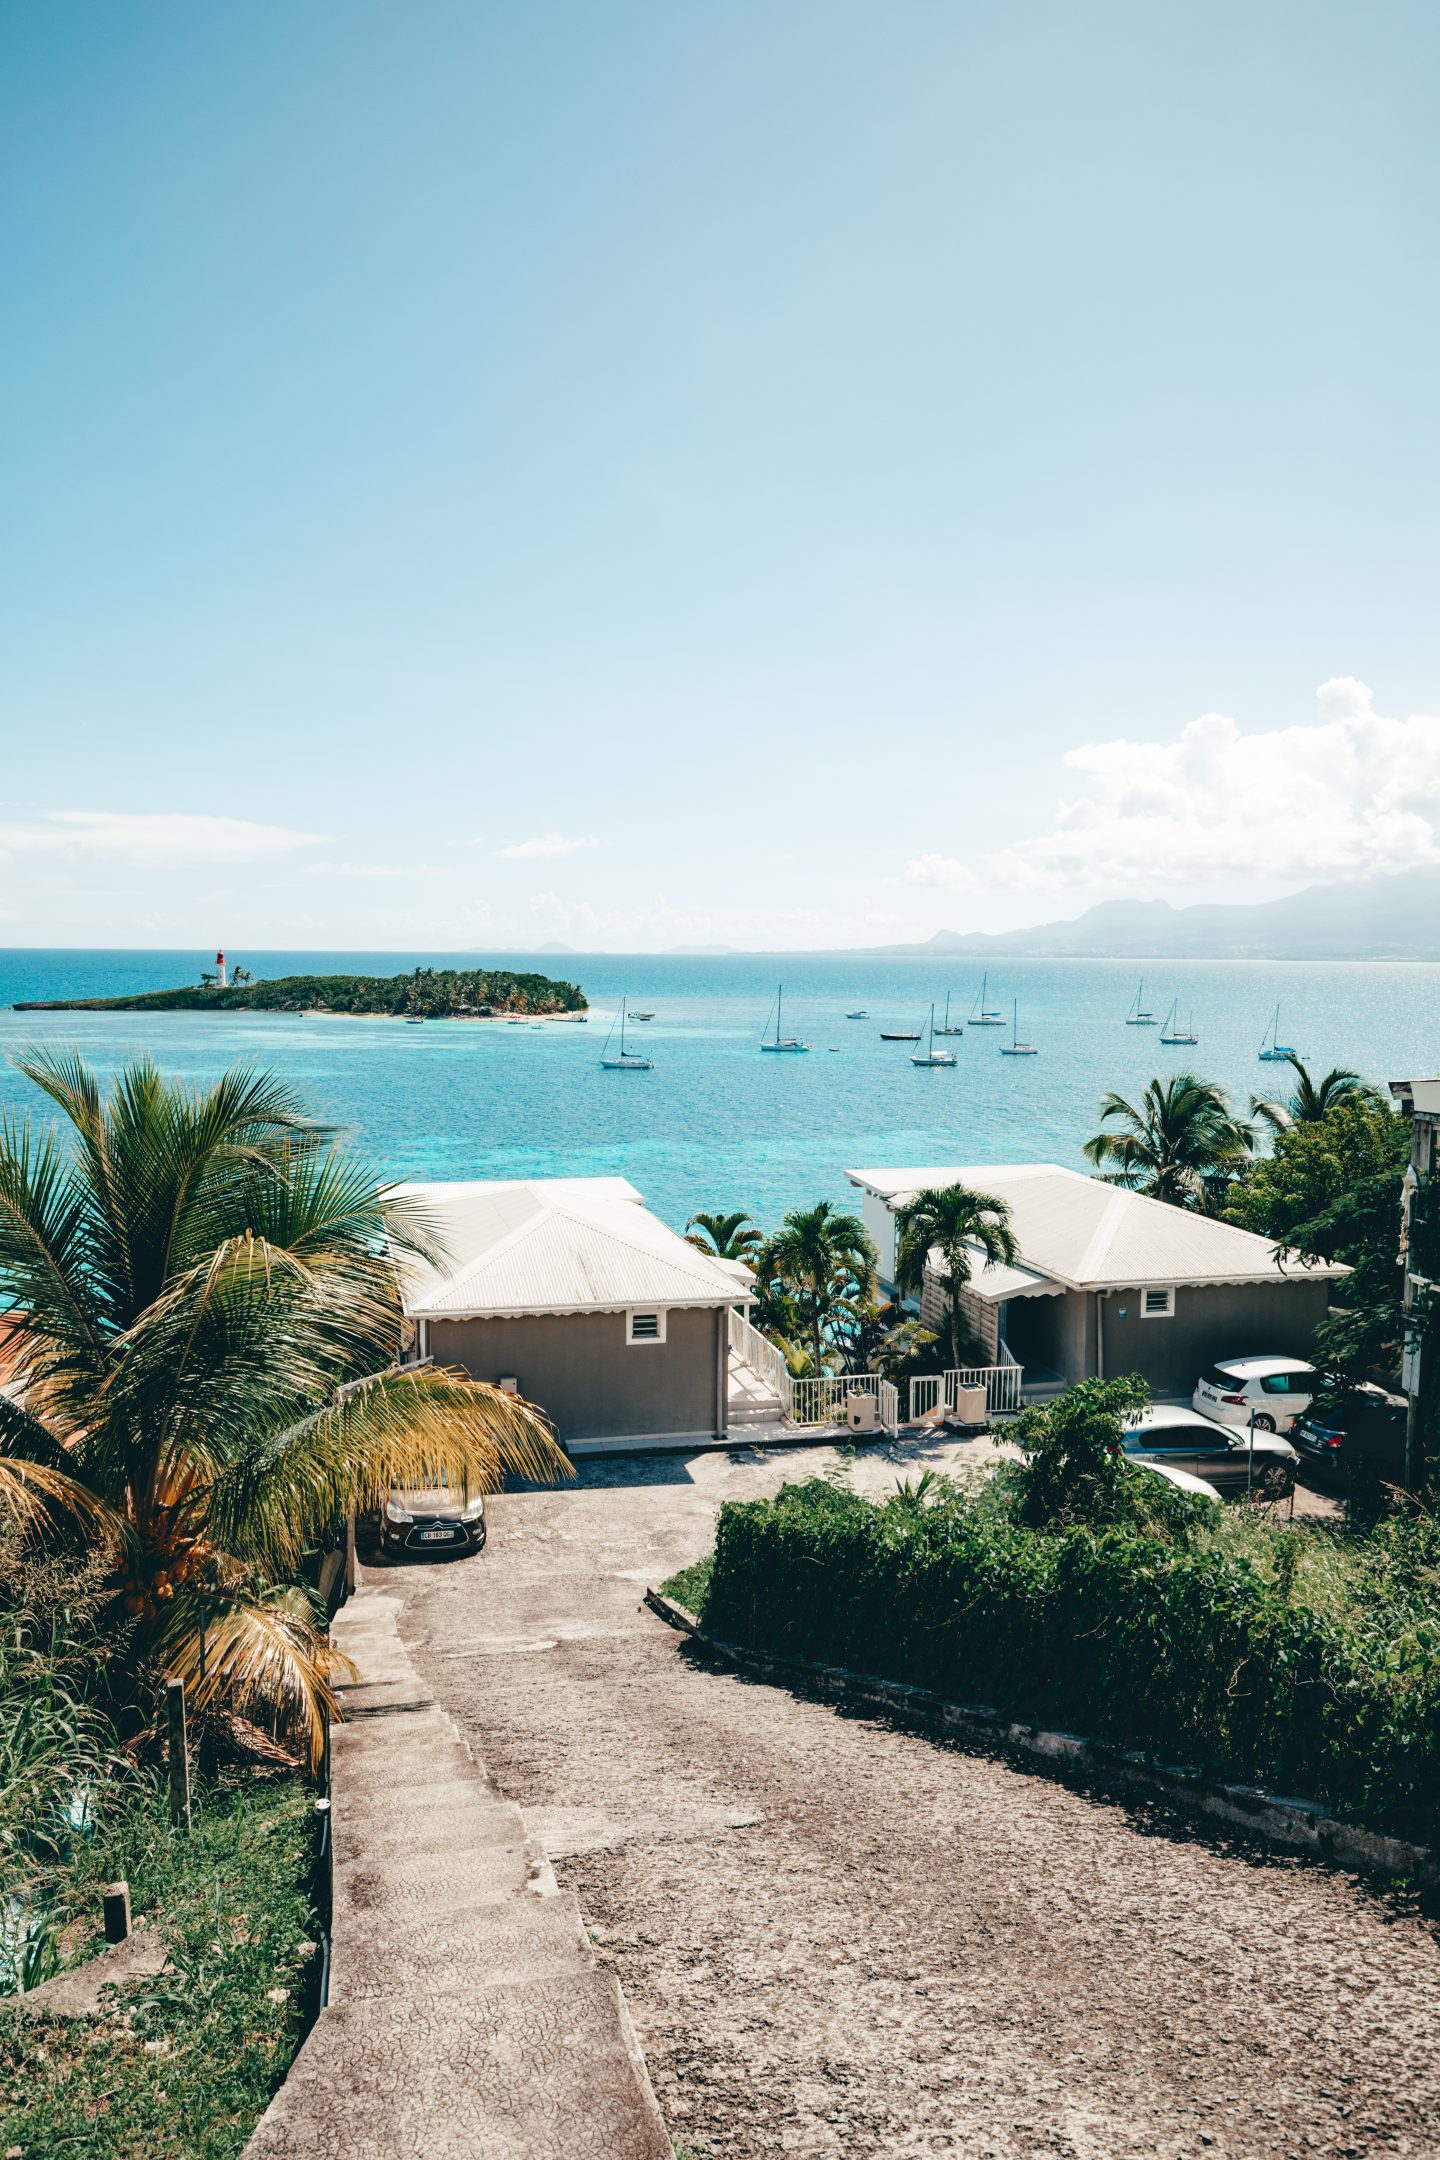 Gosier Guadeloupe - Blondie Baby blog voyage et mode